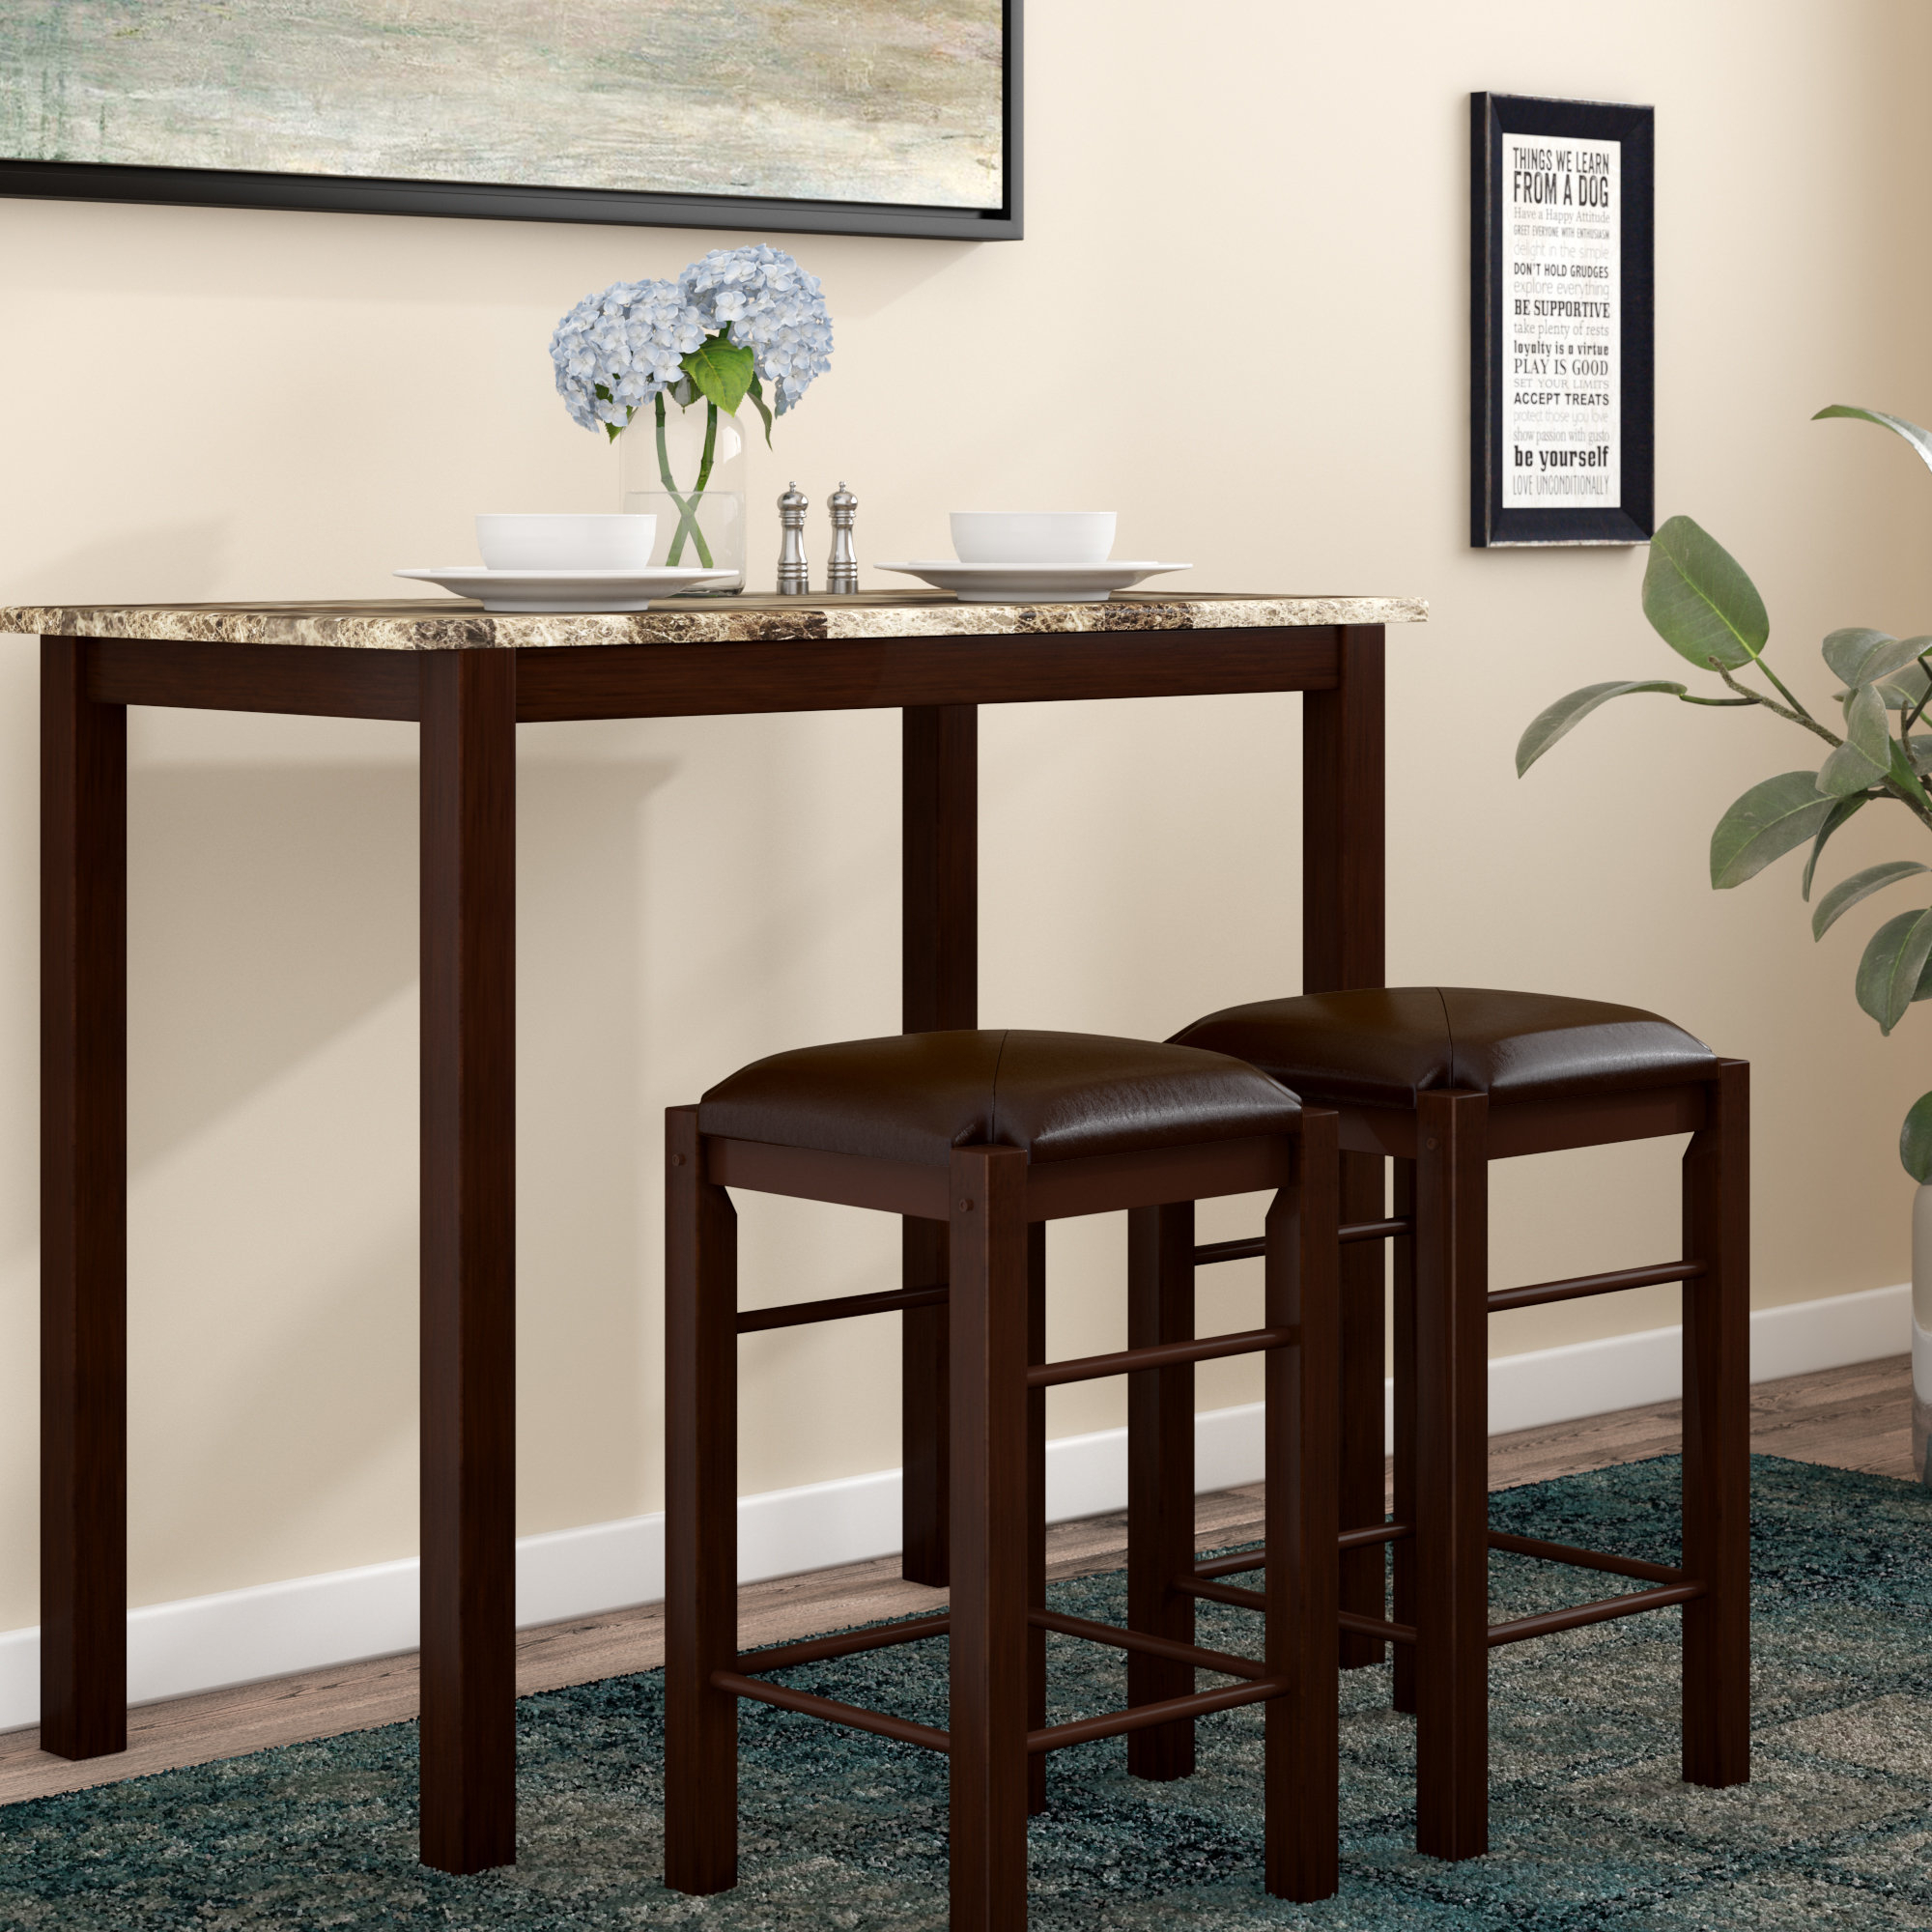 Penelope 3 Piece Counter Height Wood Dining Set With Regard To Best And Newest Sheetz 3 Piece Counter Height Dining Sets (View 6 of 20)